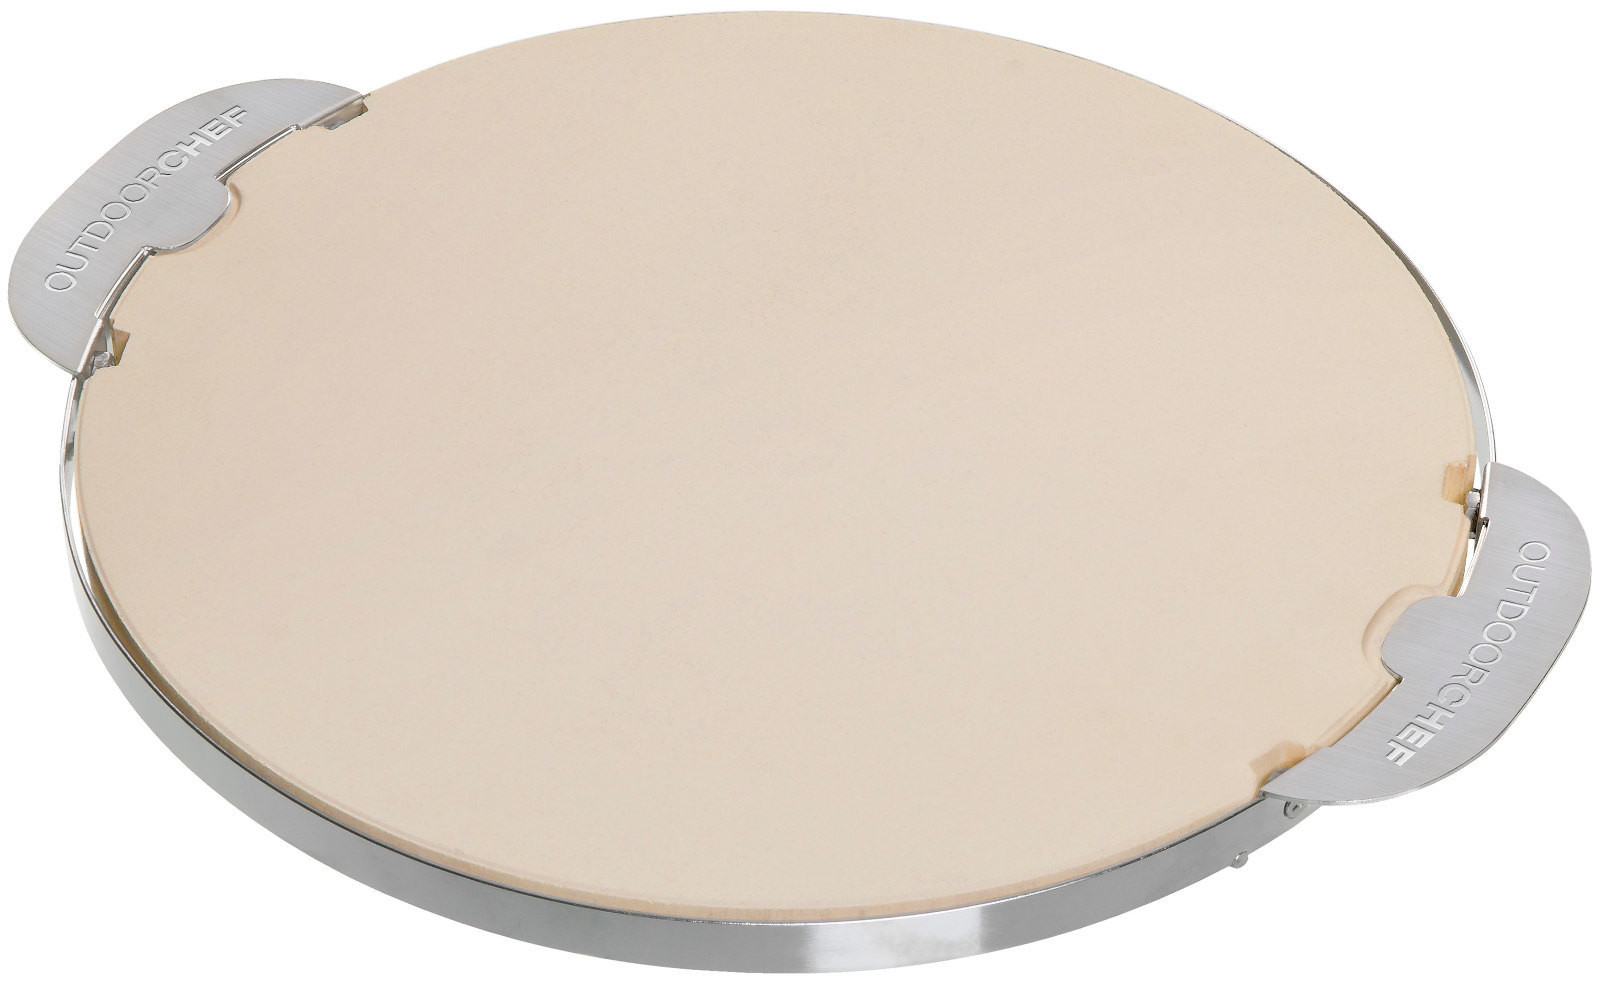 Outdoorchef-Pizzakivi 420/480, Outdoorchef-7